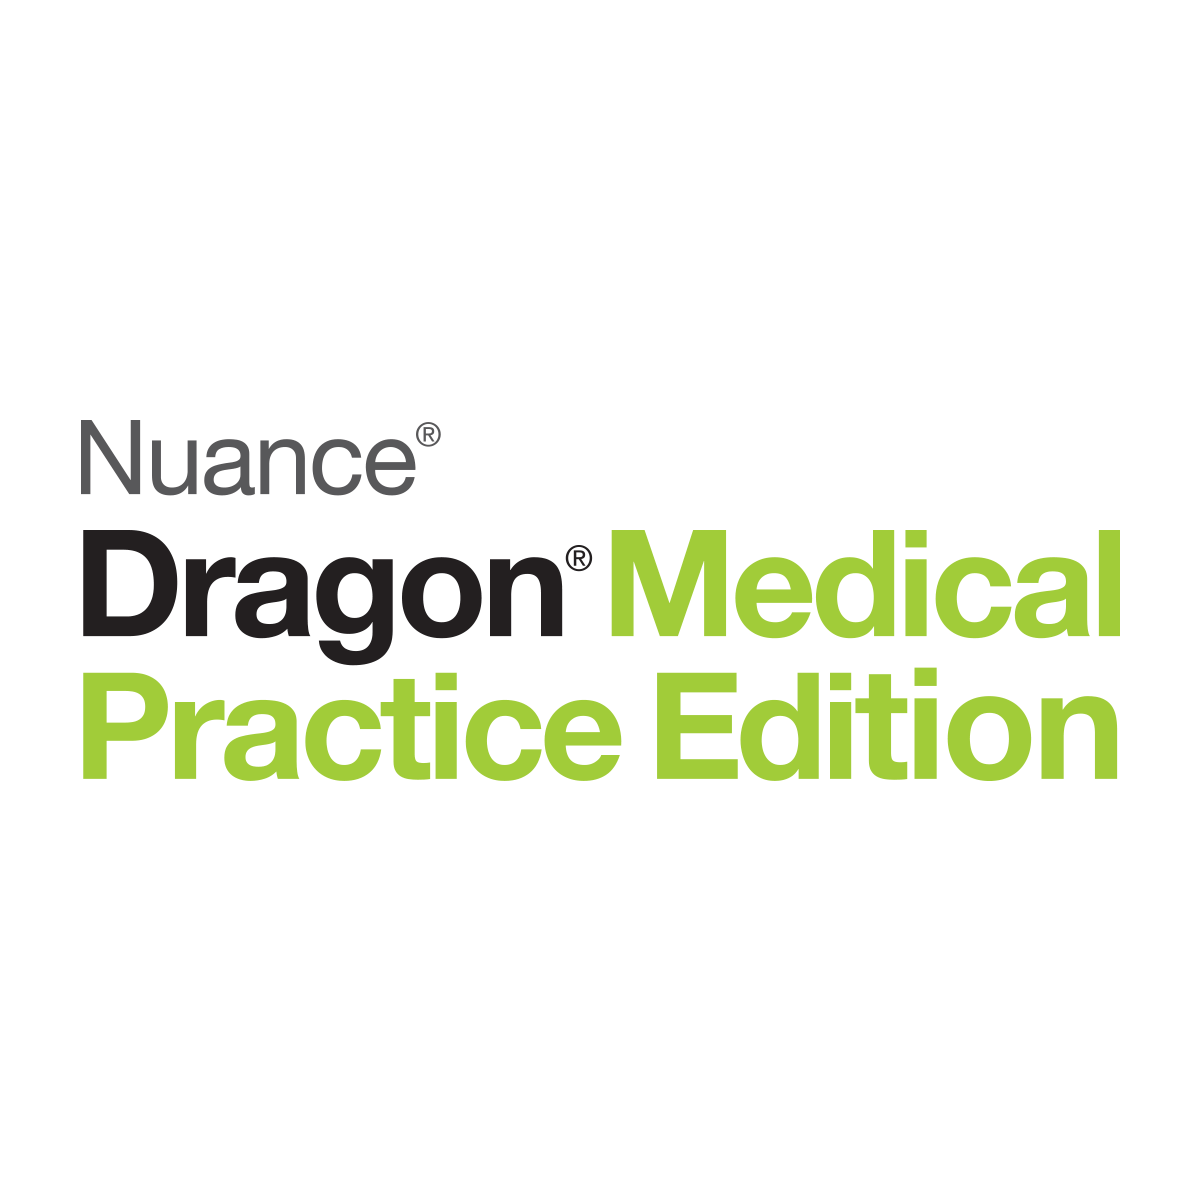 NUA-ROY-A709F-X00-4.0 DRAGON MEDICAL PRACTICE EDITION 4 FRENCH